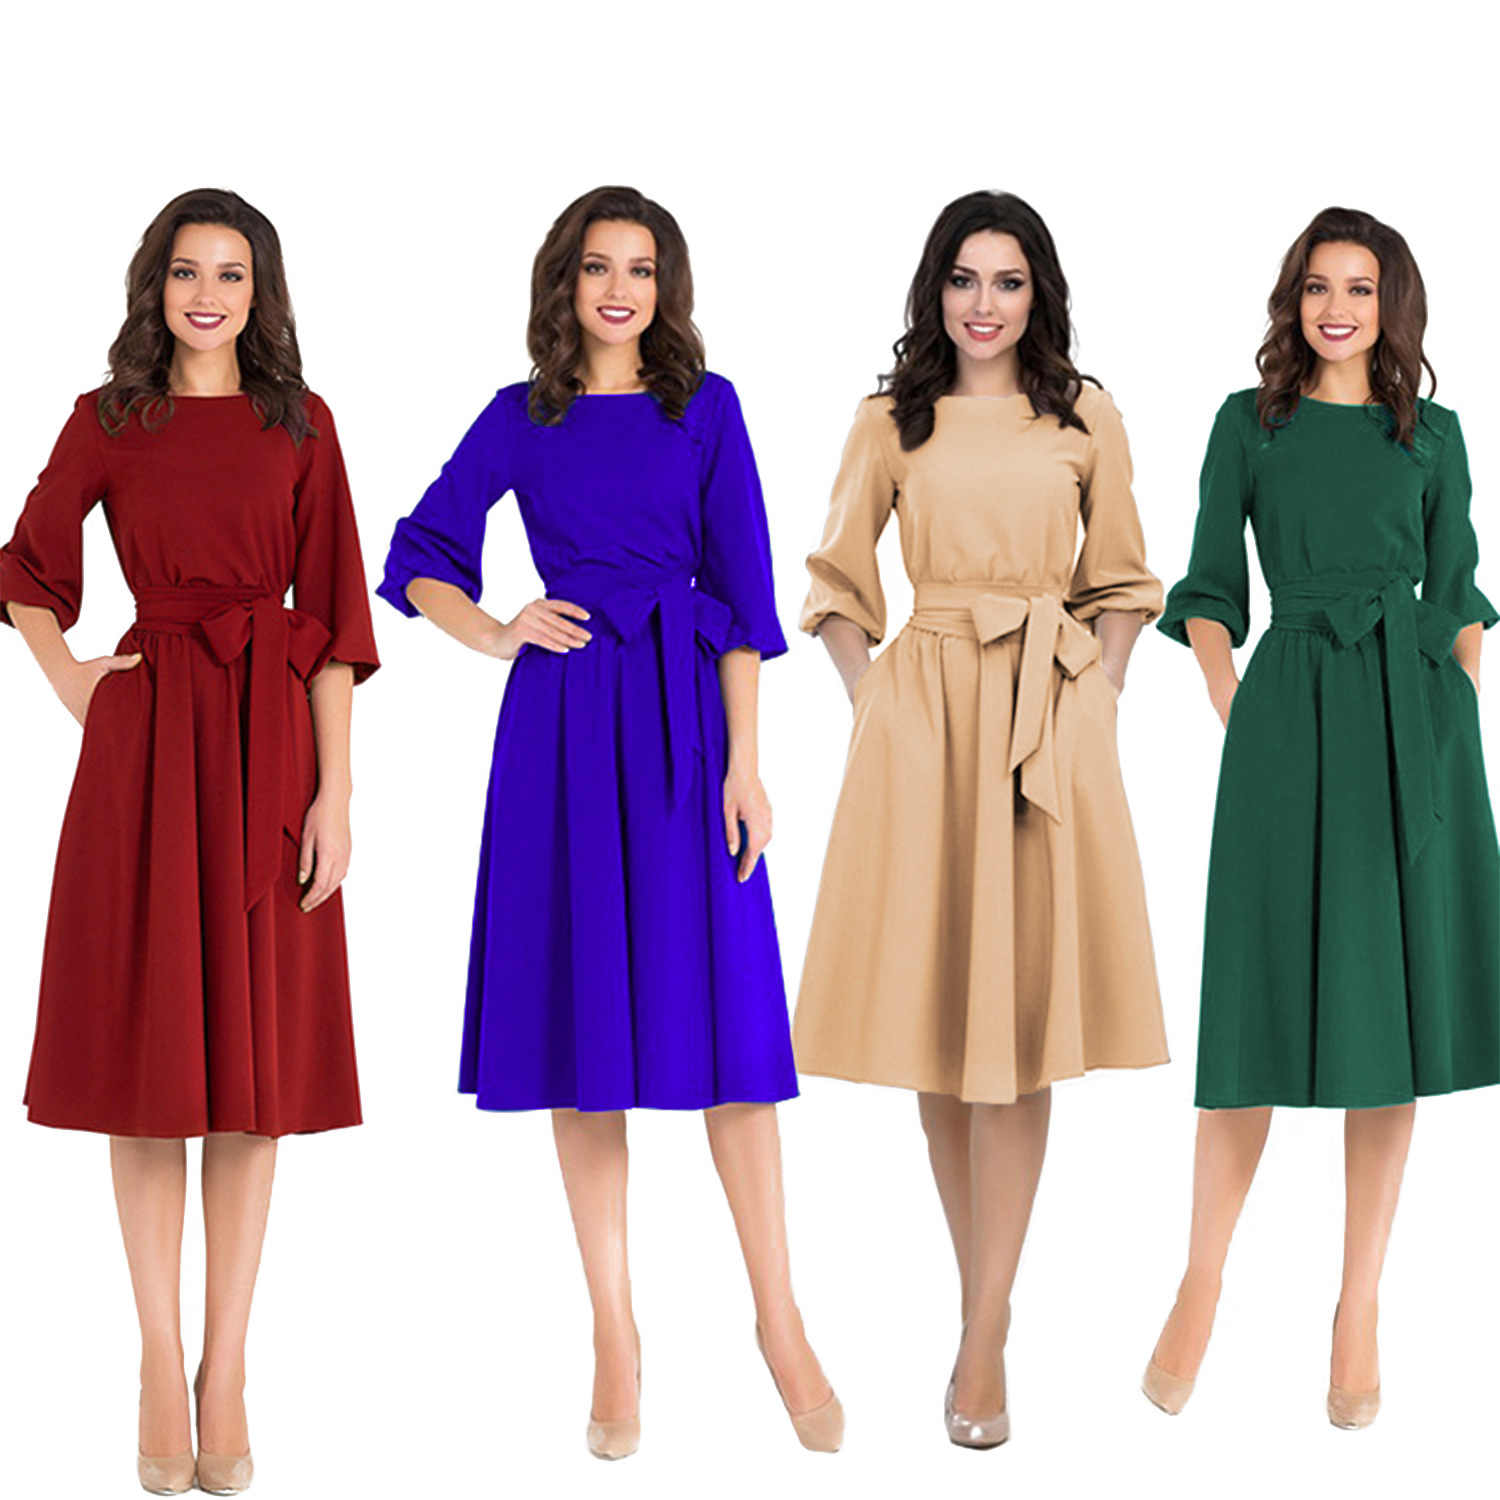 OWLPRINCESS The new 2019 round collar pure color waist long-sleeved dress